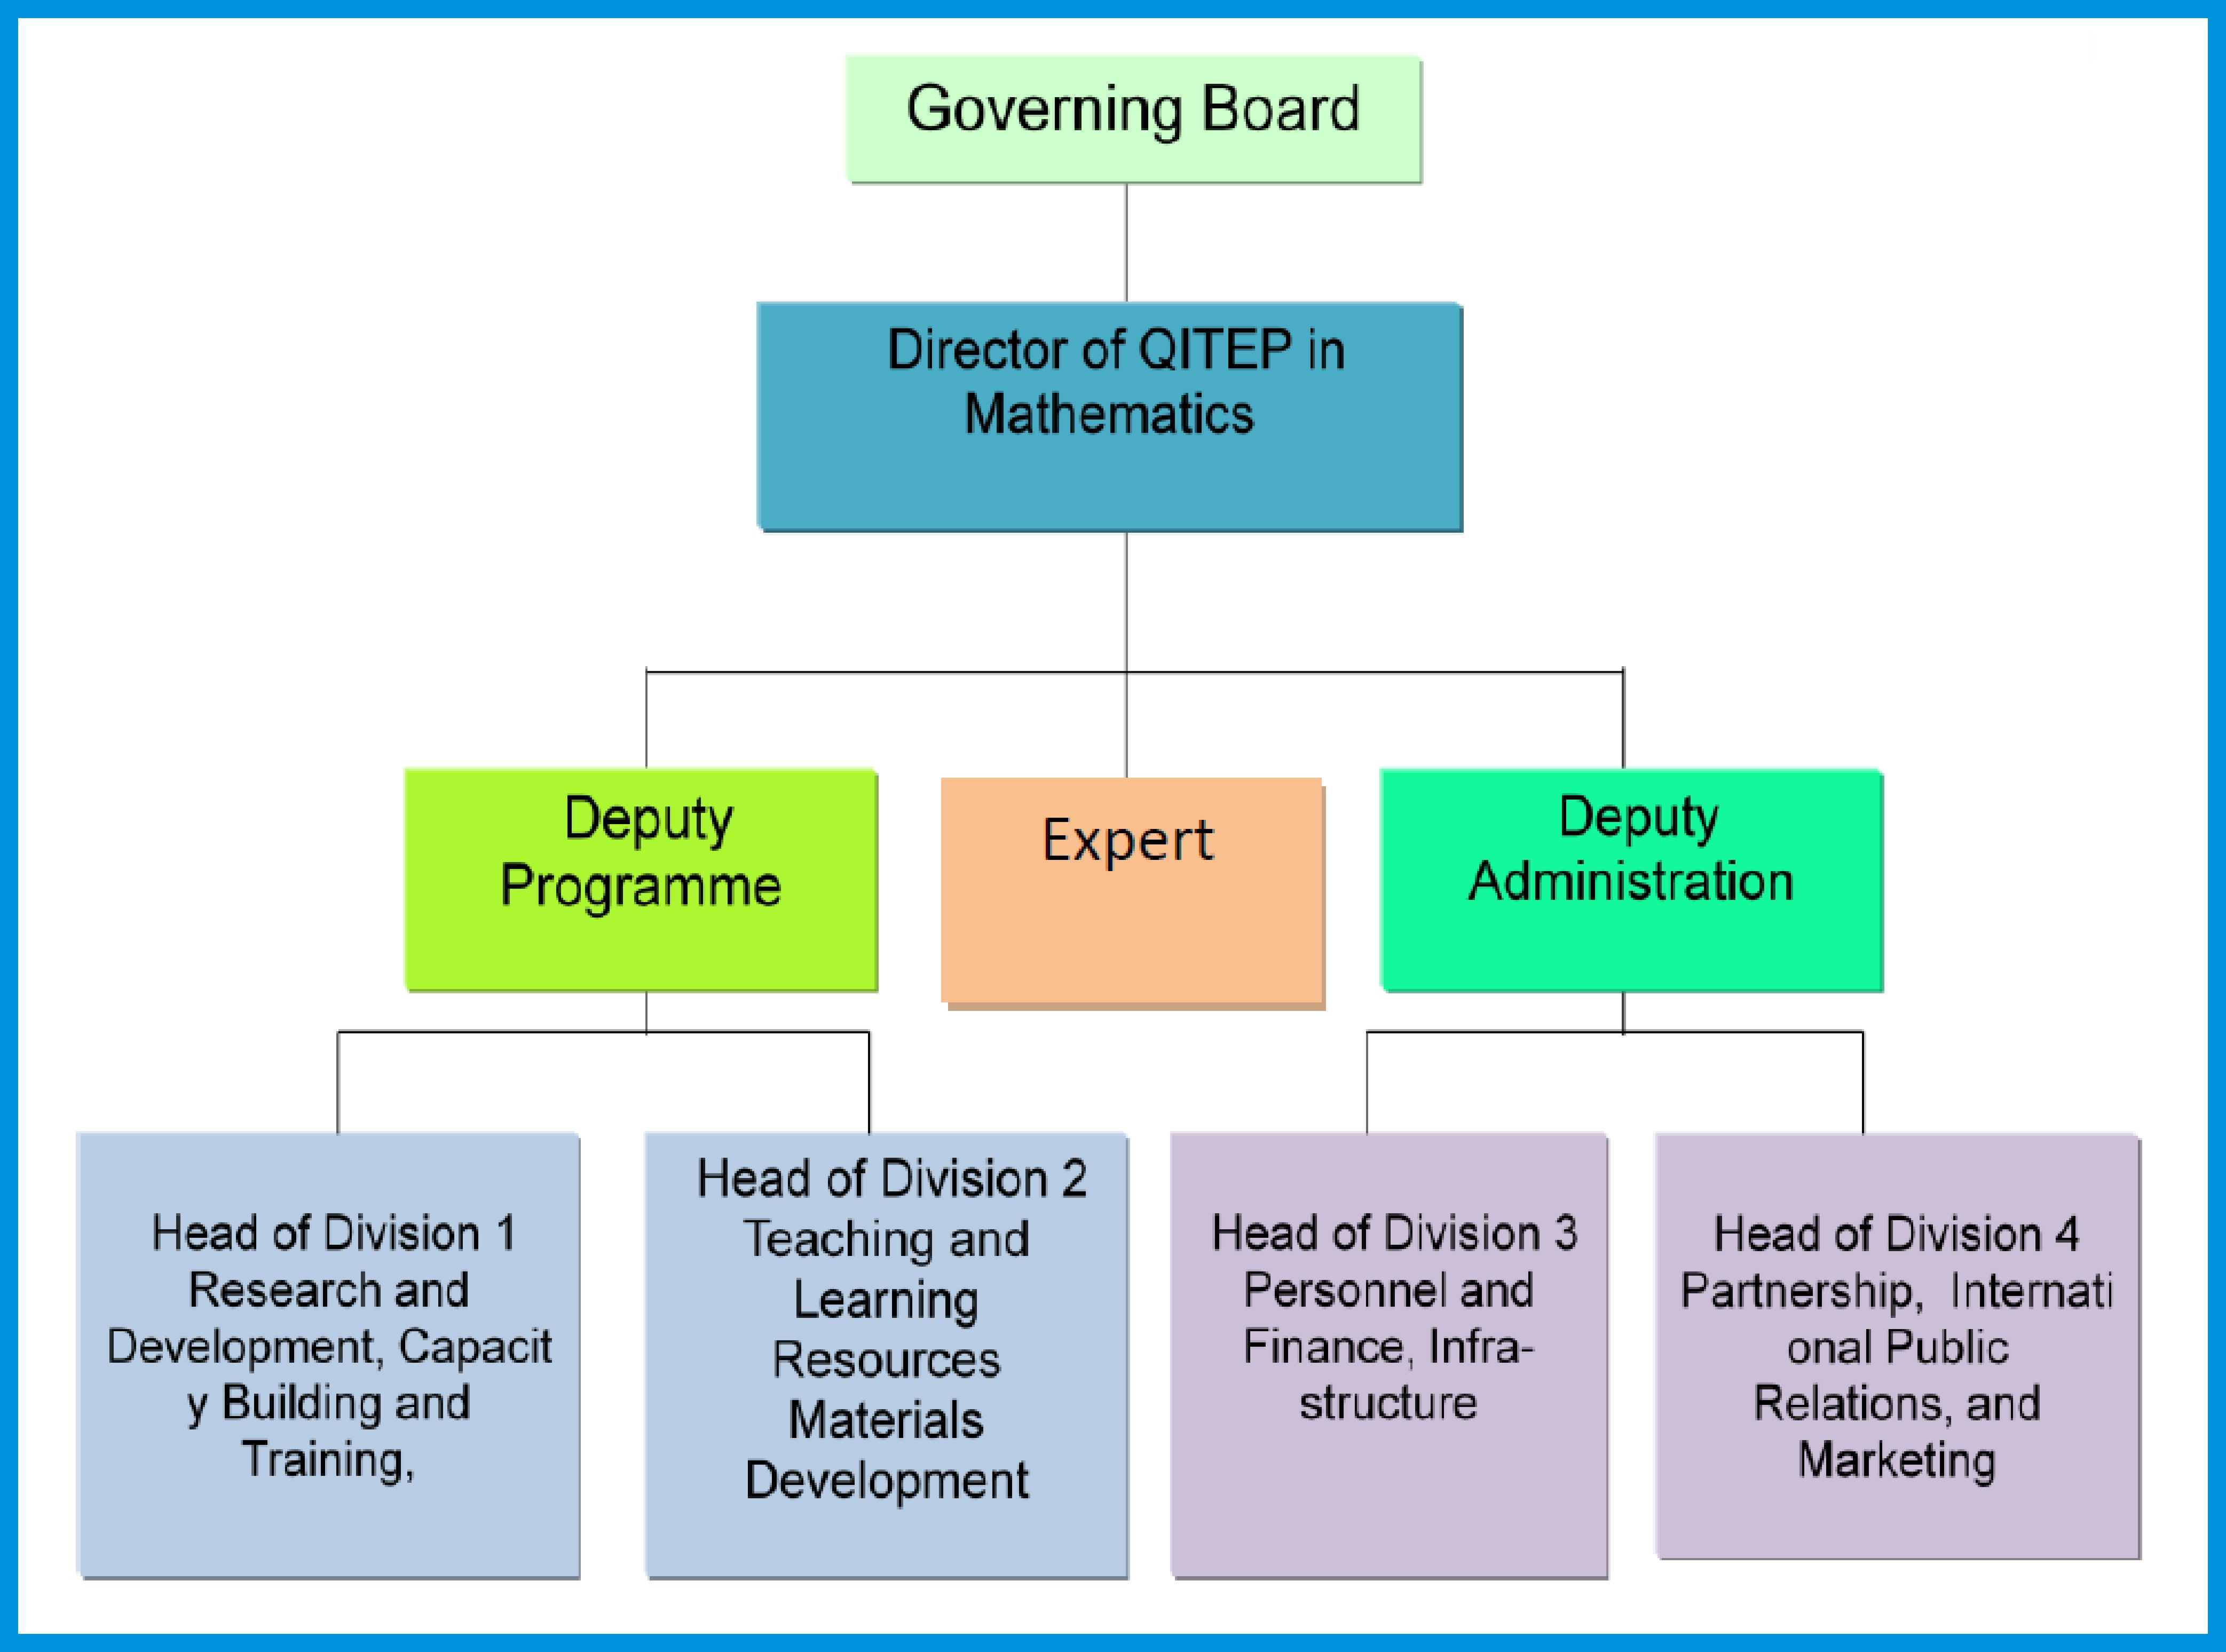 The organizational structure of QITEP in Mathematics is shown in the ...